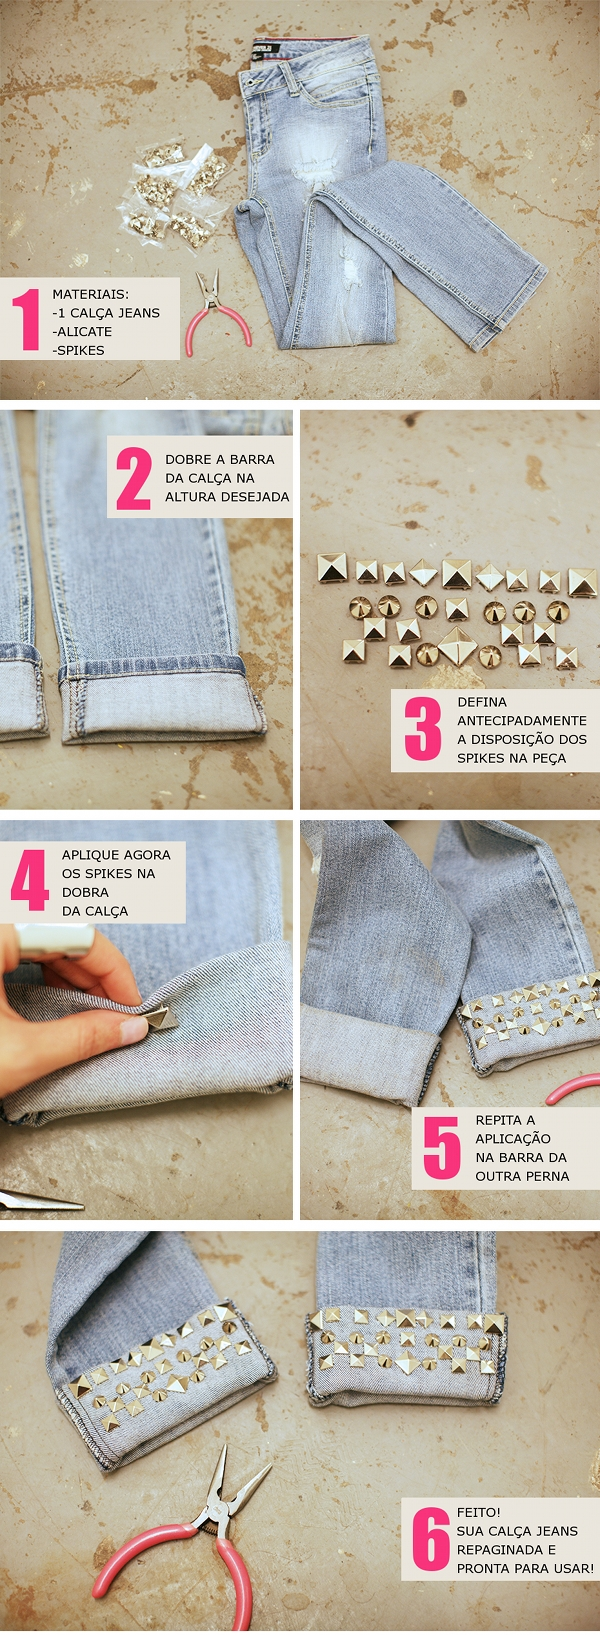 DIY: Customizar calça jeans | Decor e Salto Alto - Blog de Moda